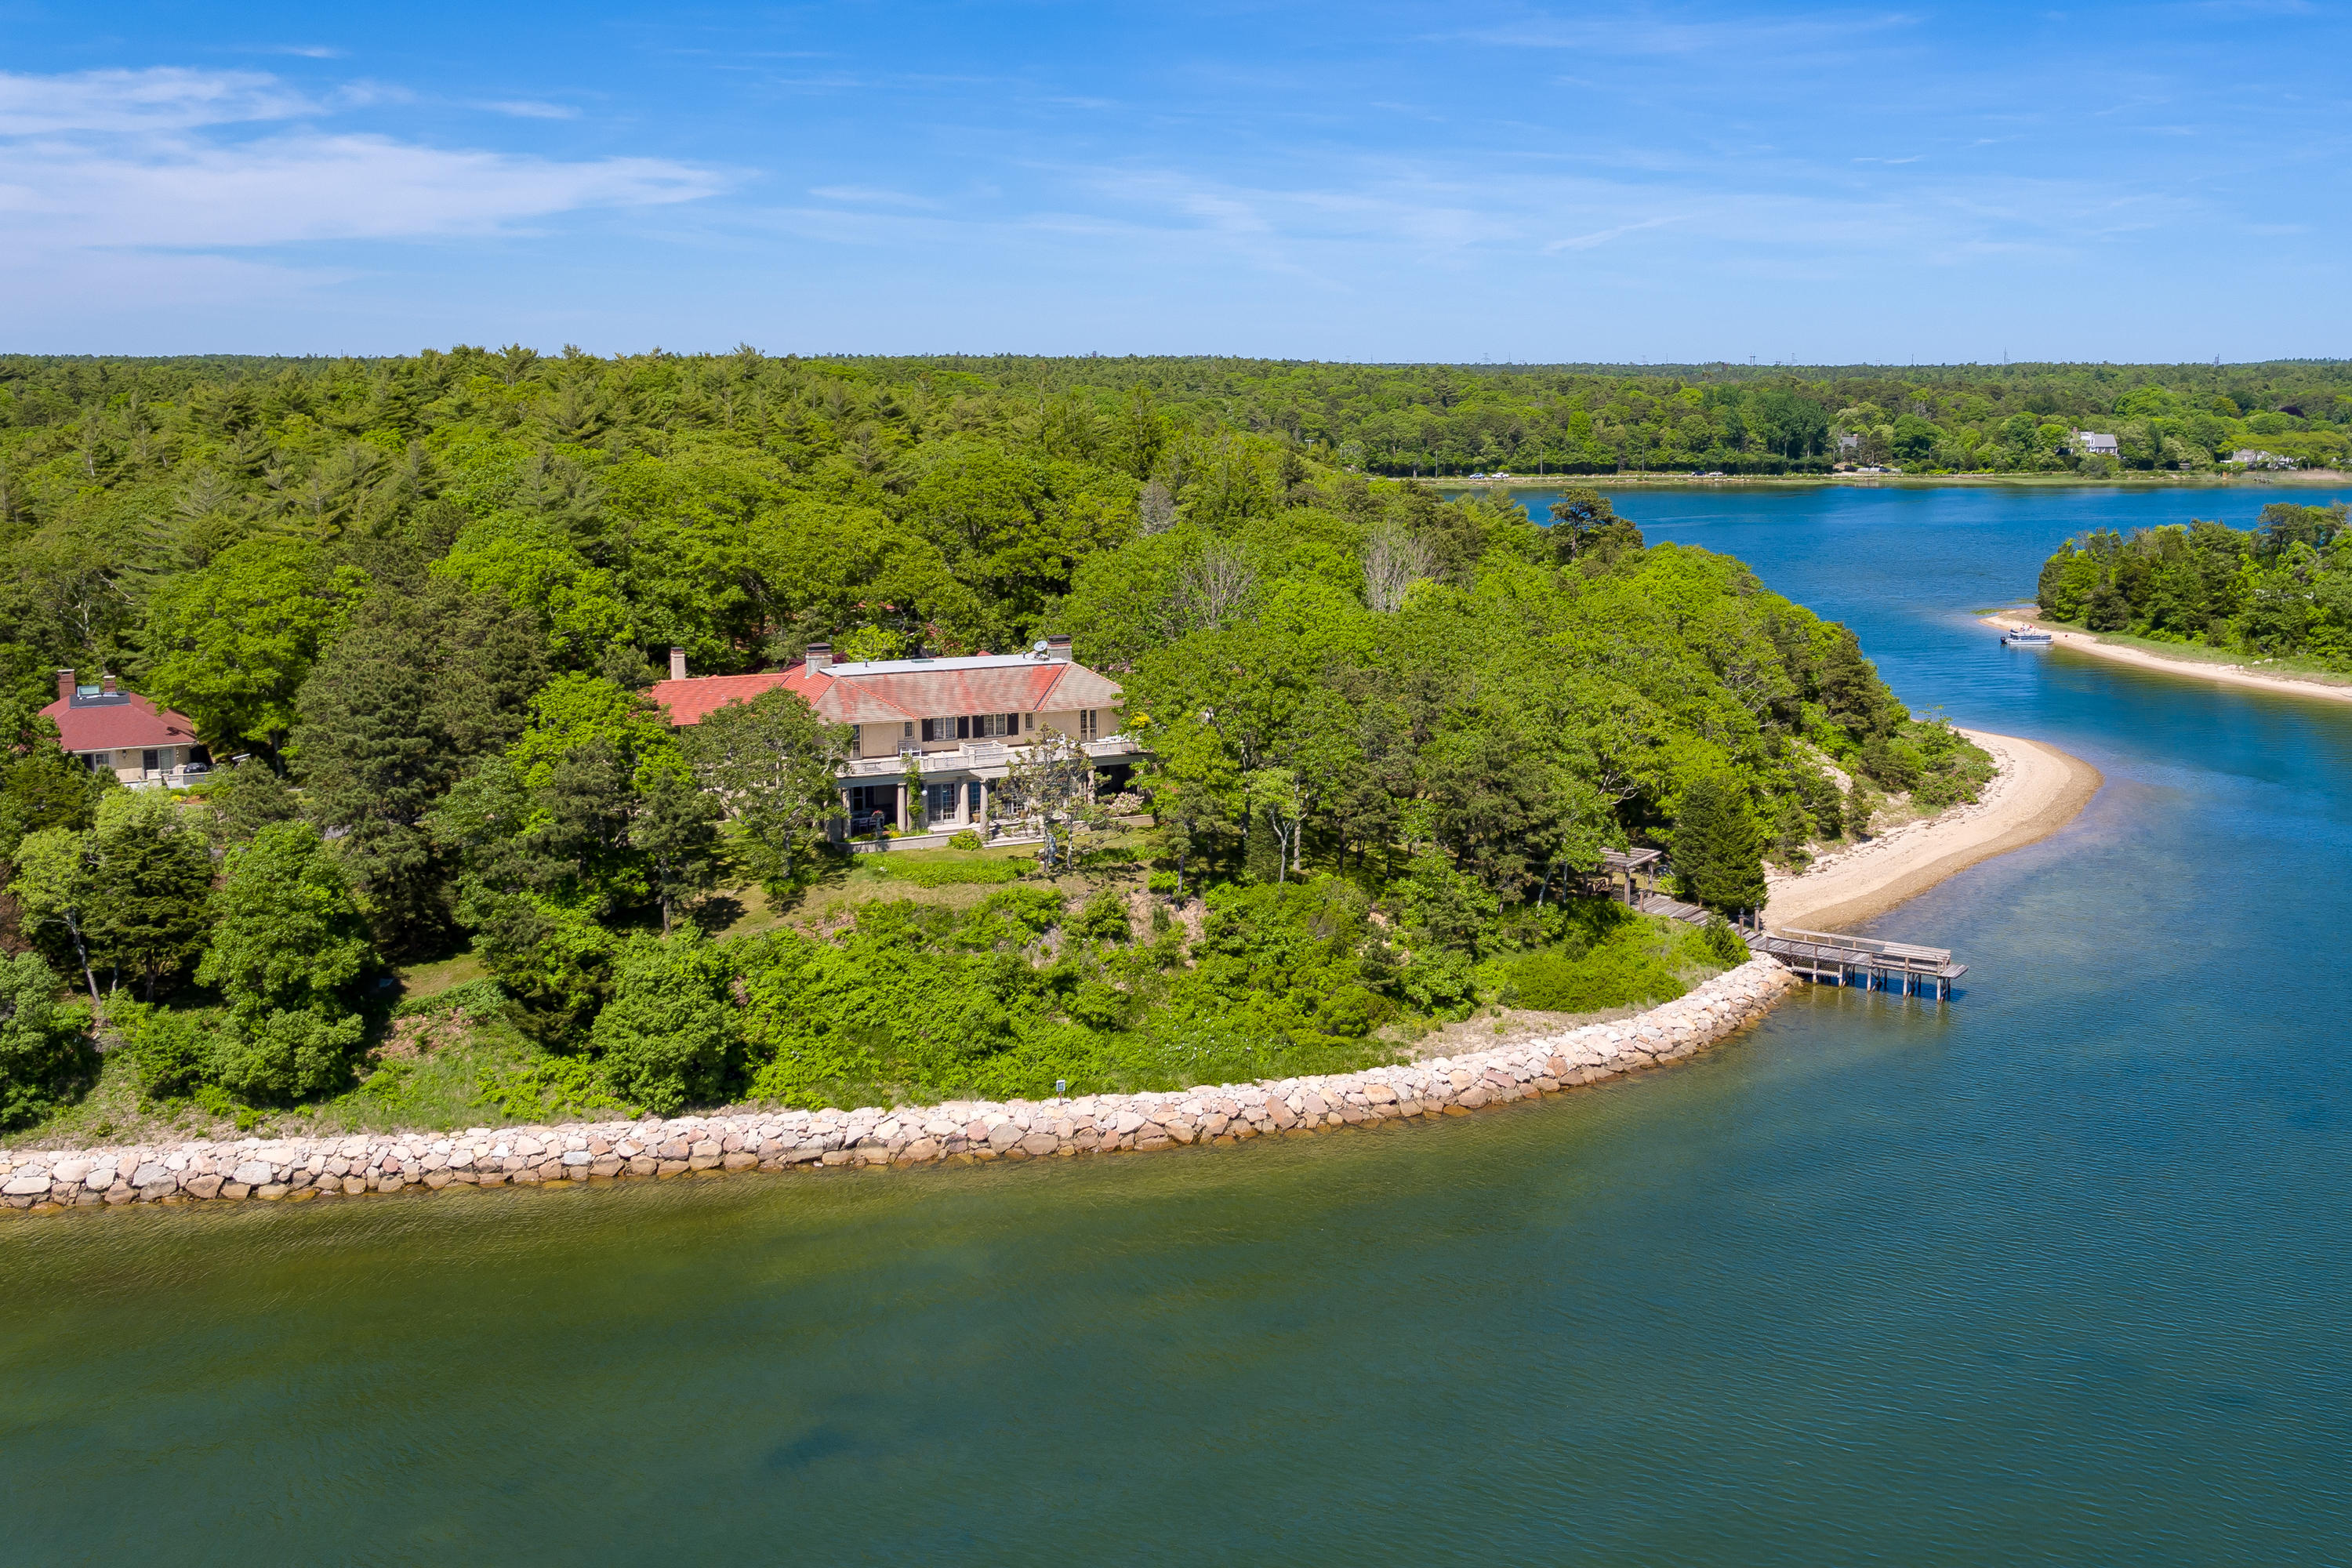 681 Head Of The Bay Road, Buzzards Bay, Massachusetts, 02532, 7 Bedrooms Bedrooms, ,6 BathroomsBathrooms,Residential,For Sale,681 Head Of The Bay Road,21904351